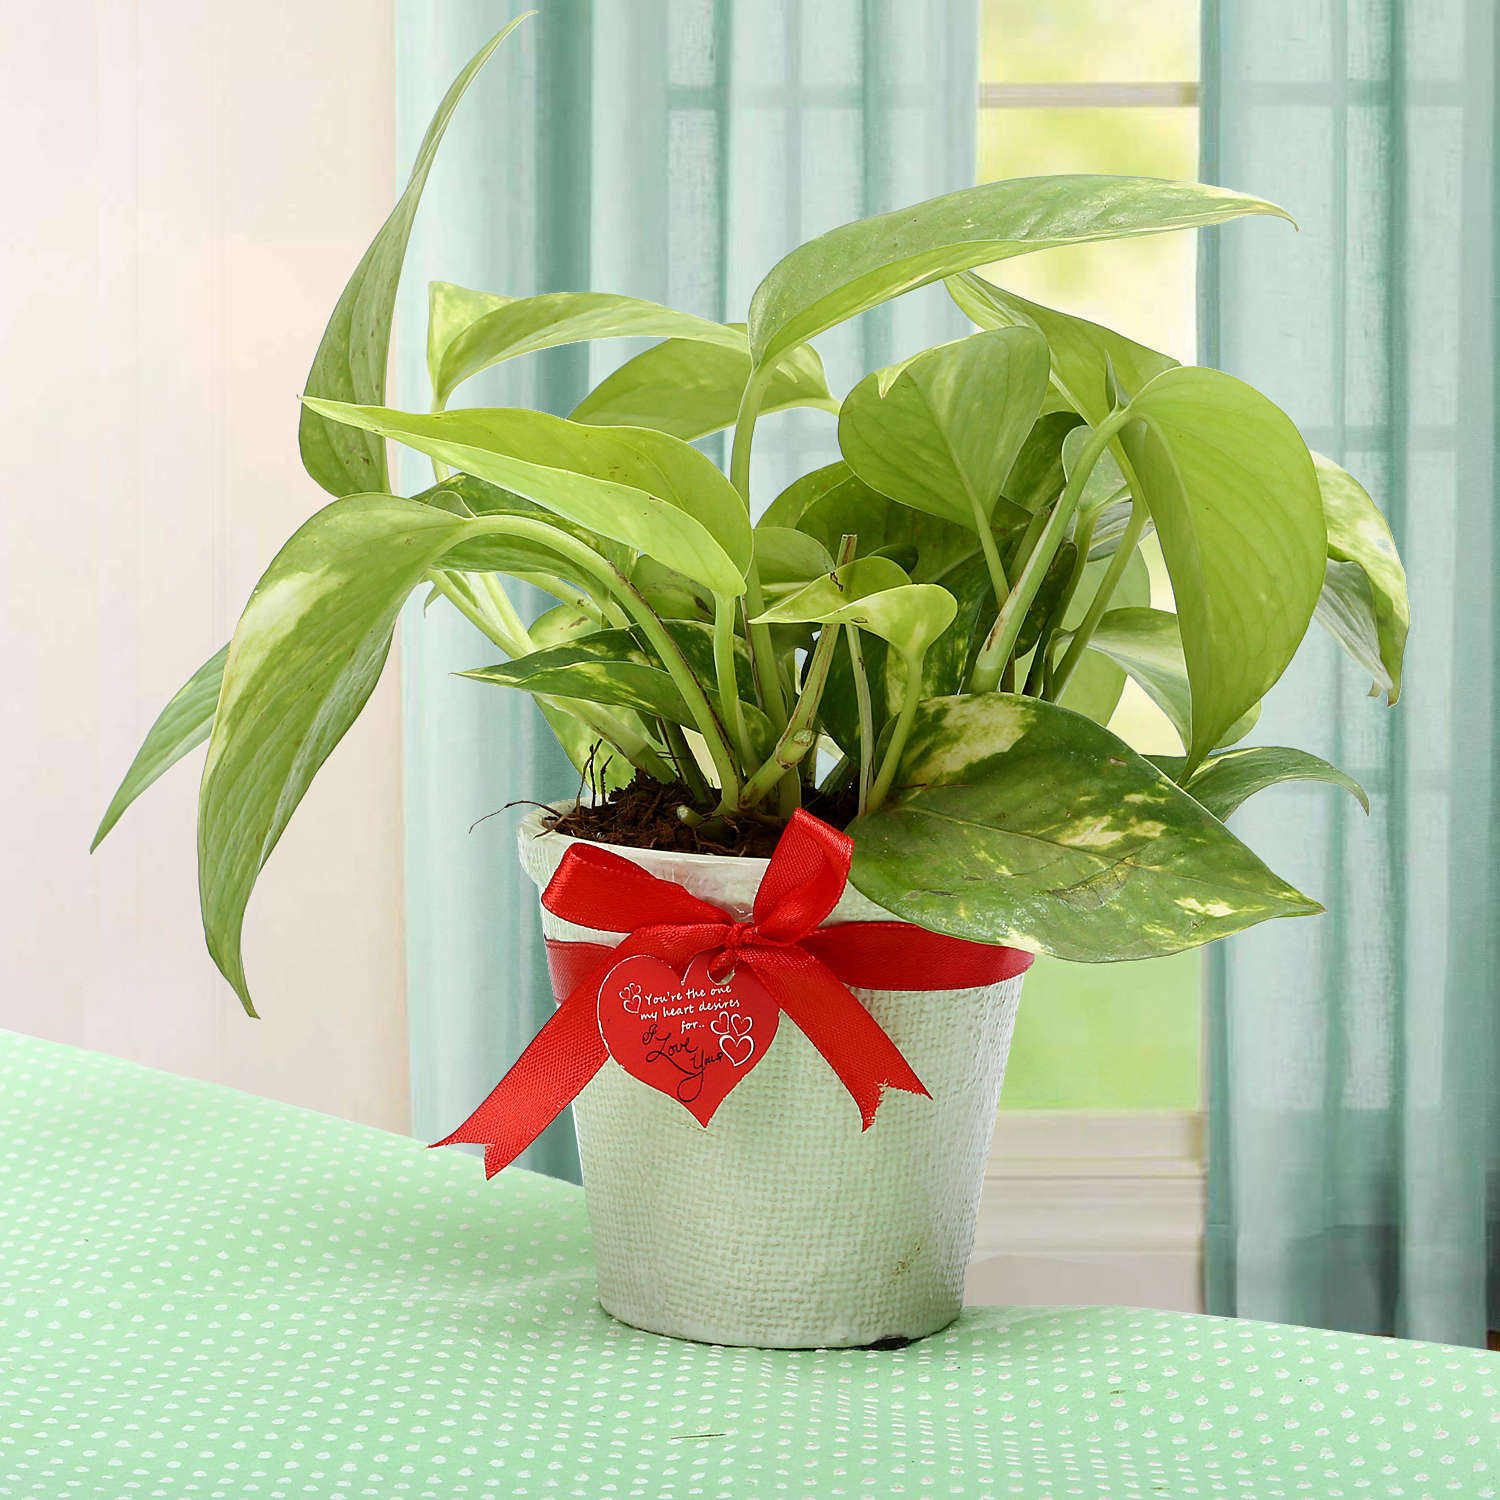 vase for lucky bamboo plant of order send flowers online send flowers to india inside grab the luck money plant799buy now